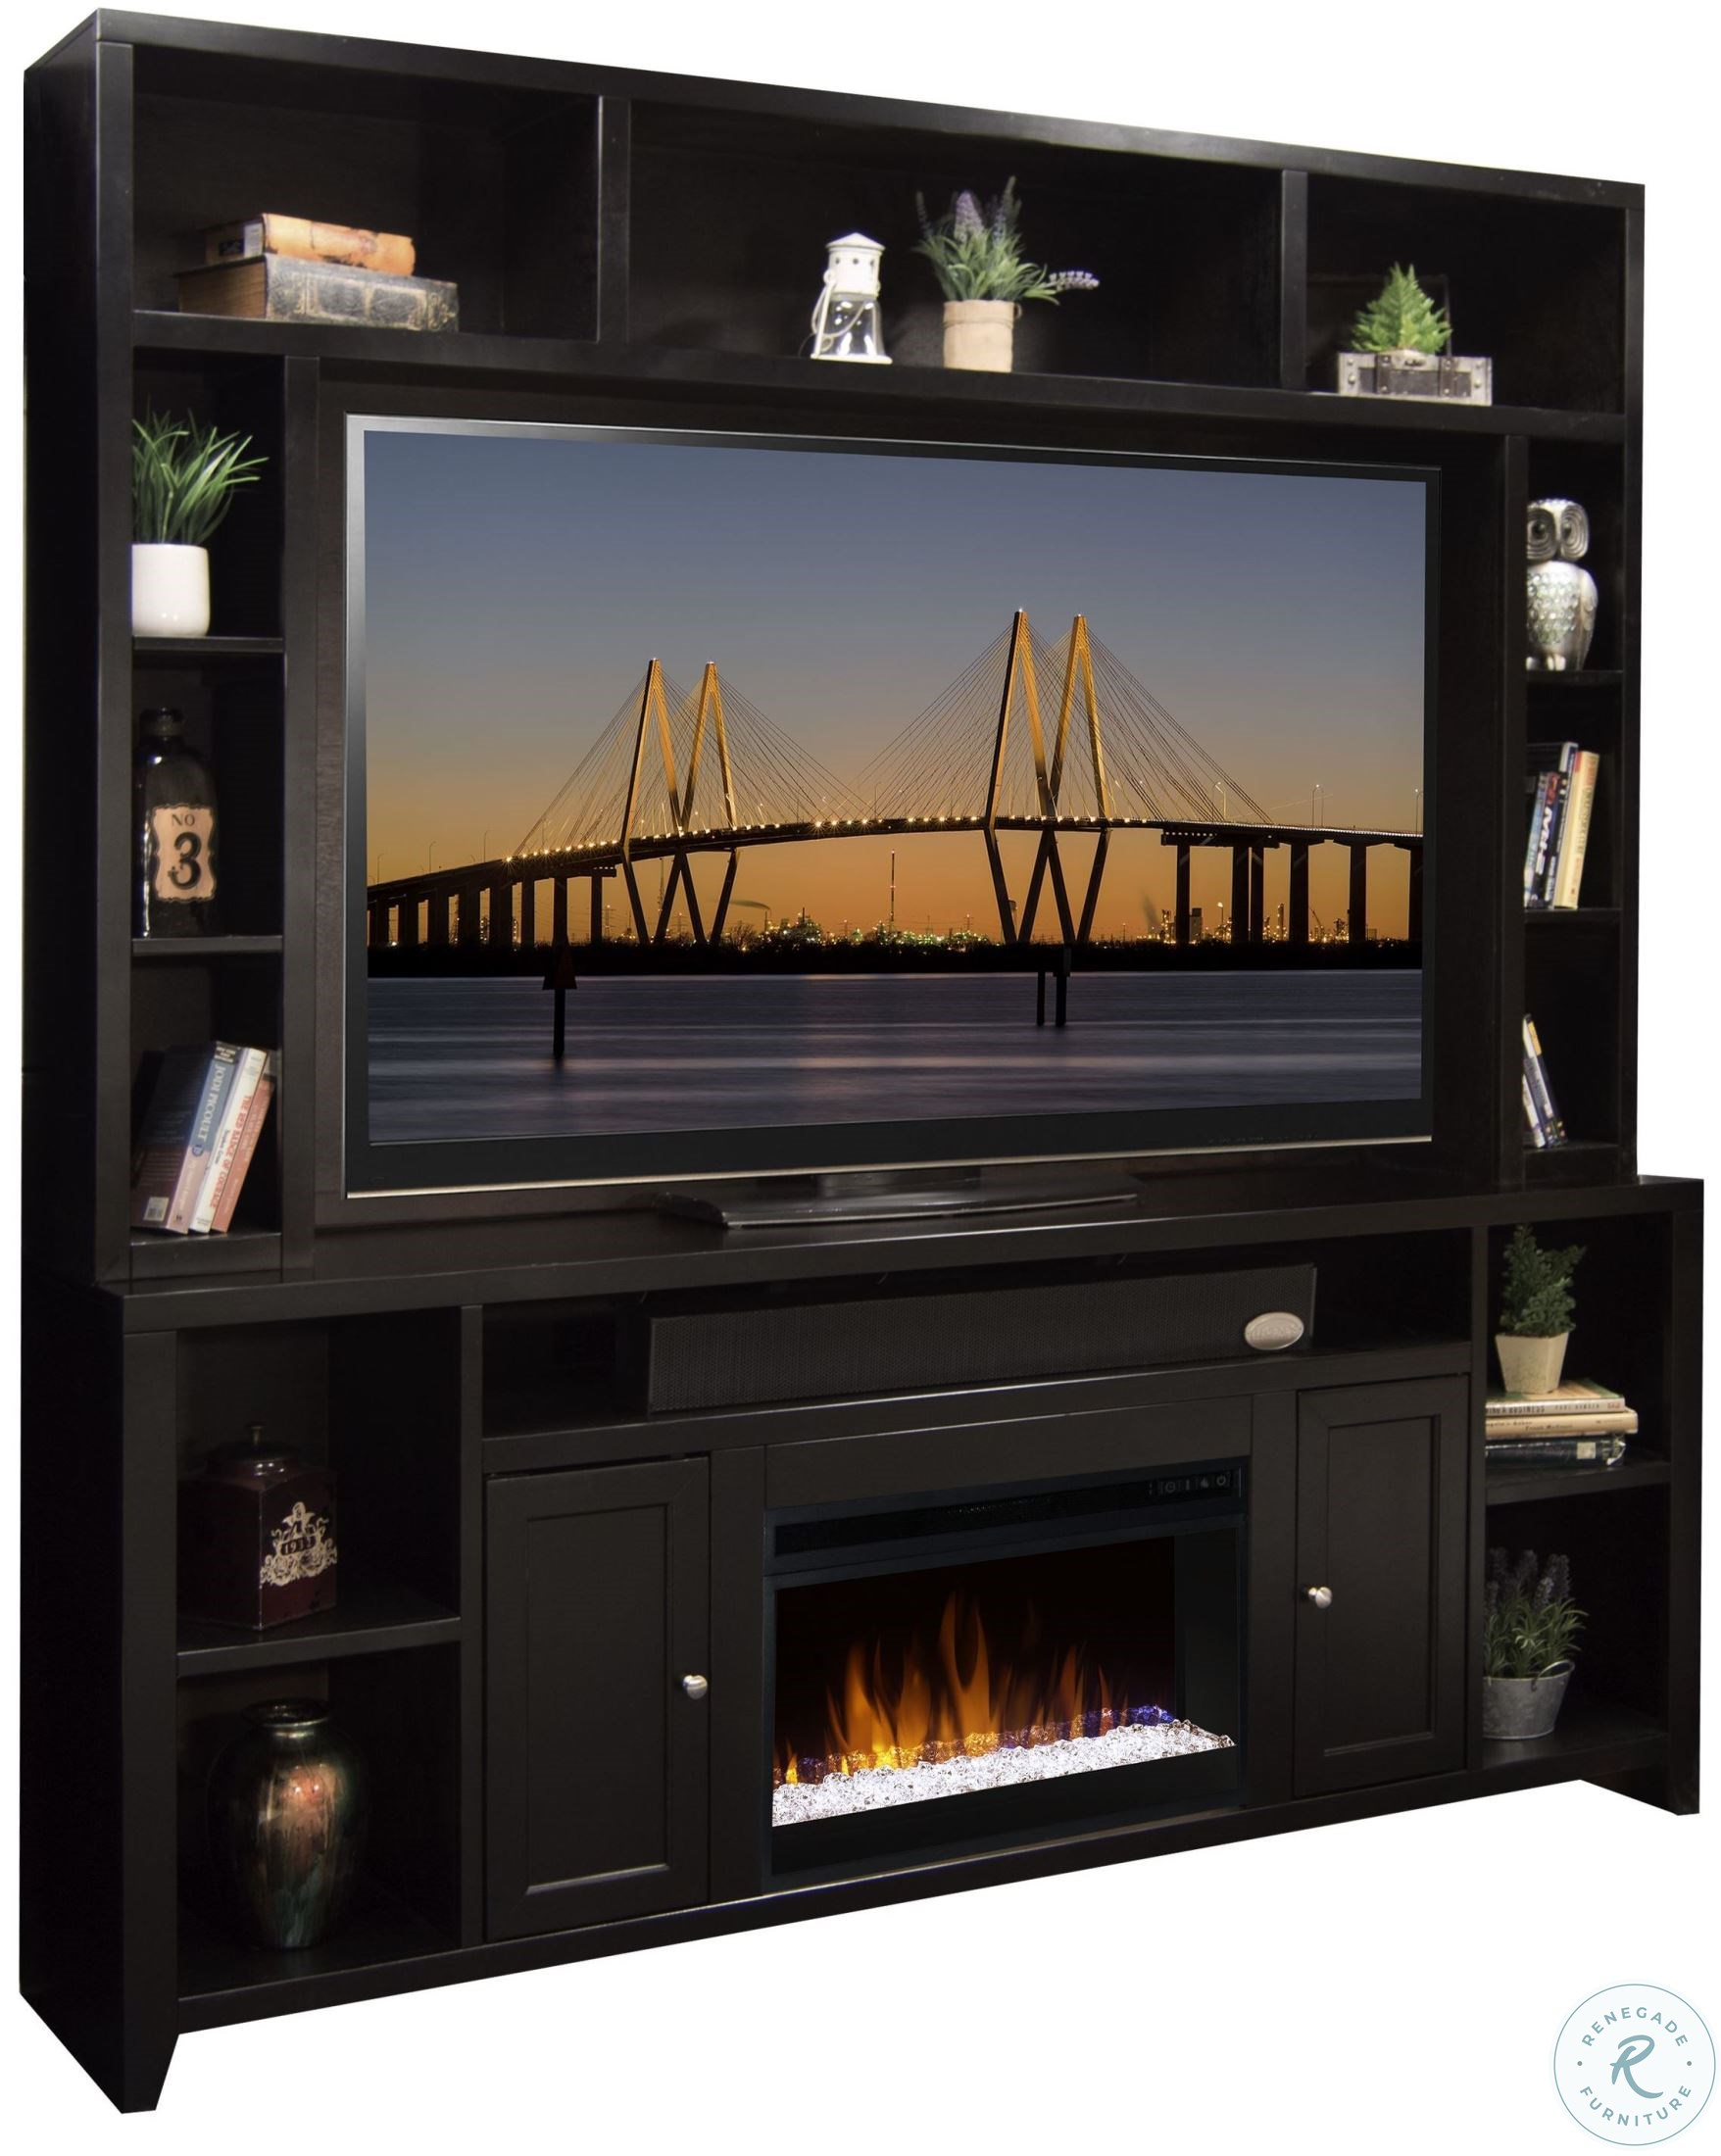 Fireplace Wall Unit Lovely townser Grayish Brown Entertainment Wall Unit with Electric